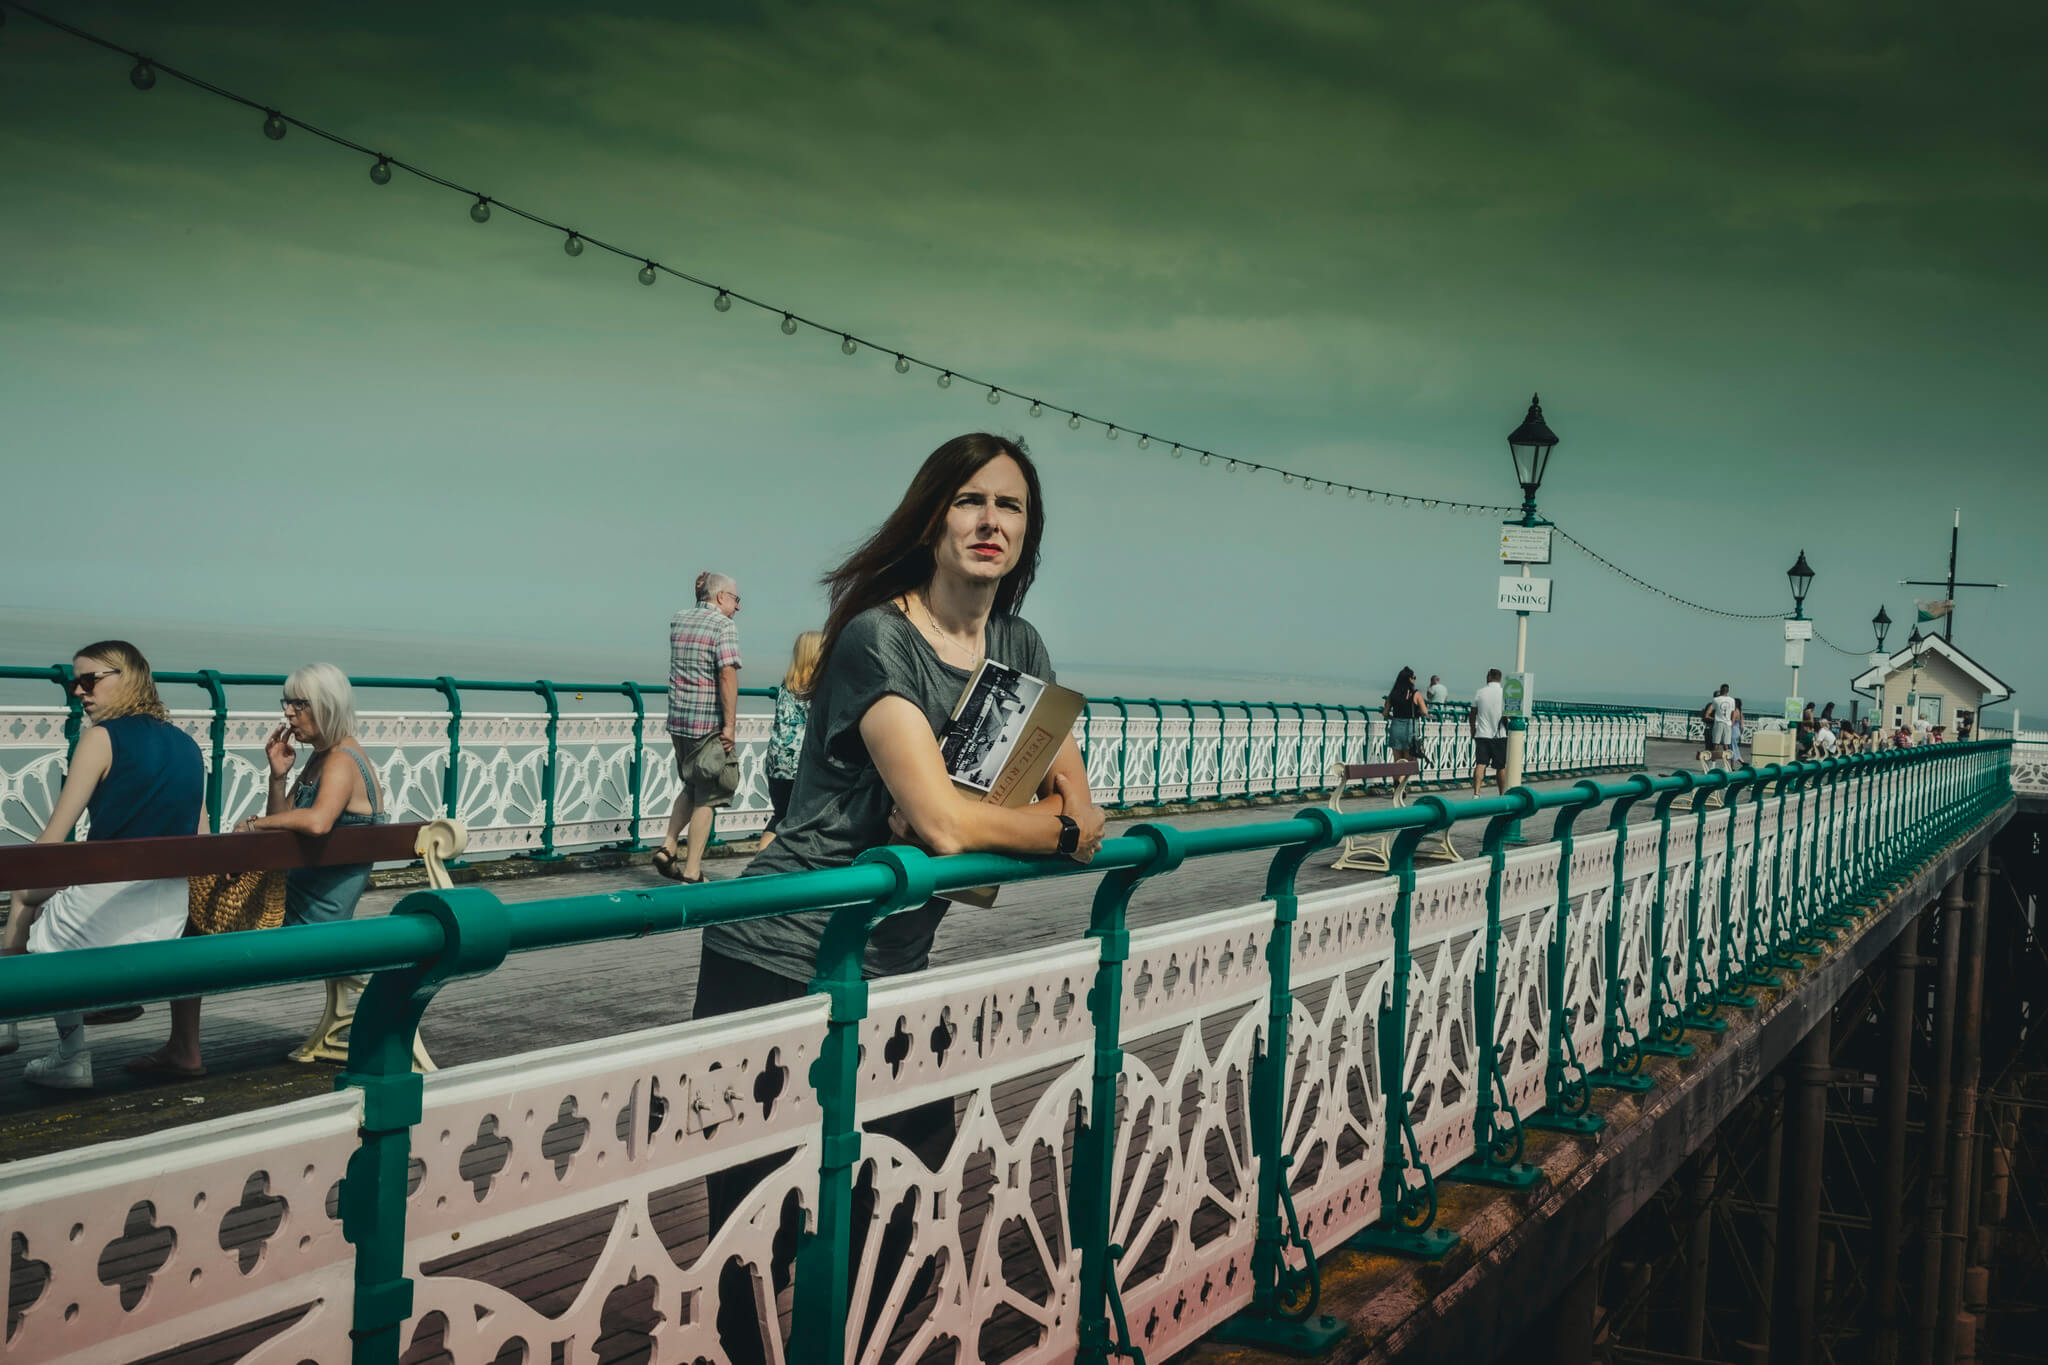 nell darby on seafront